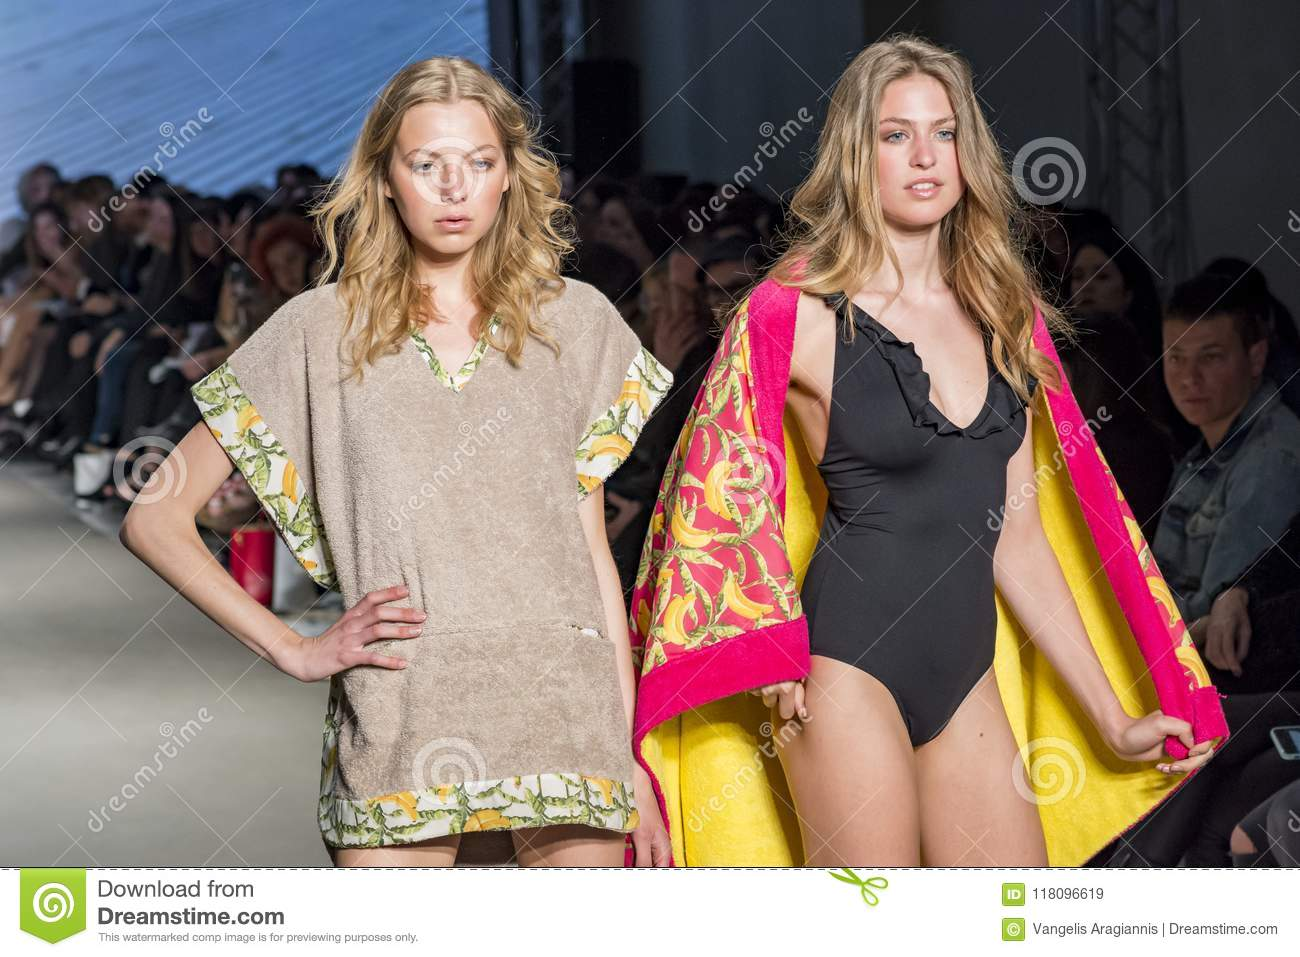 Models with swimsuit posing in fashion show